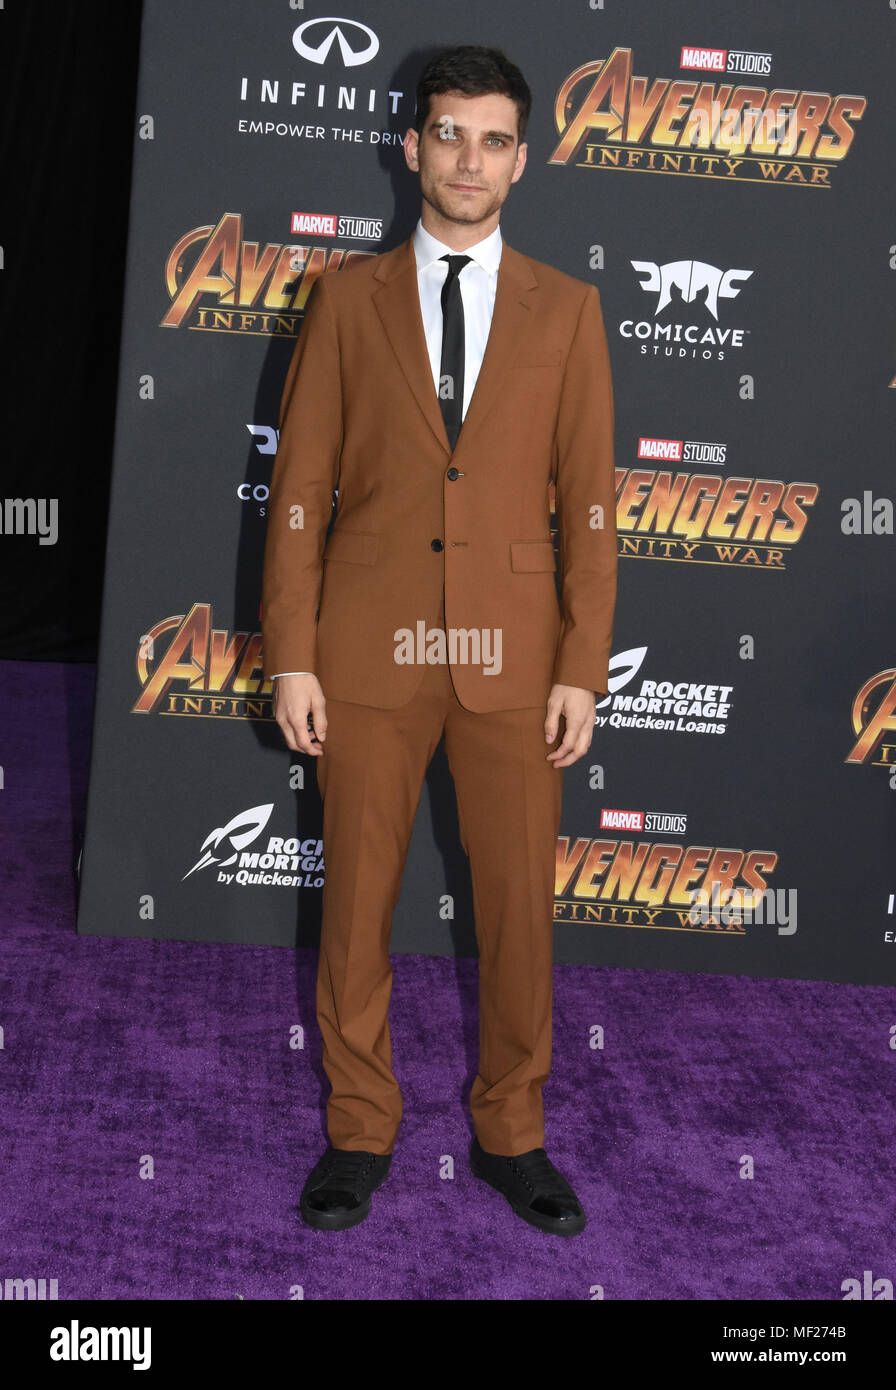 Los Angeles, California, USA. 23rd April, 2018. Actor Jeff Ward attends the World Premiere of Disney and Marvels 'Avengers: Infinity War' on April 23, 2018 in Los Angeles, California. Photo by Barry King/Alamy Live News Stock Photo